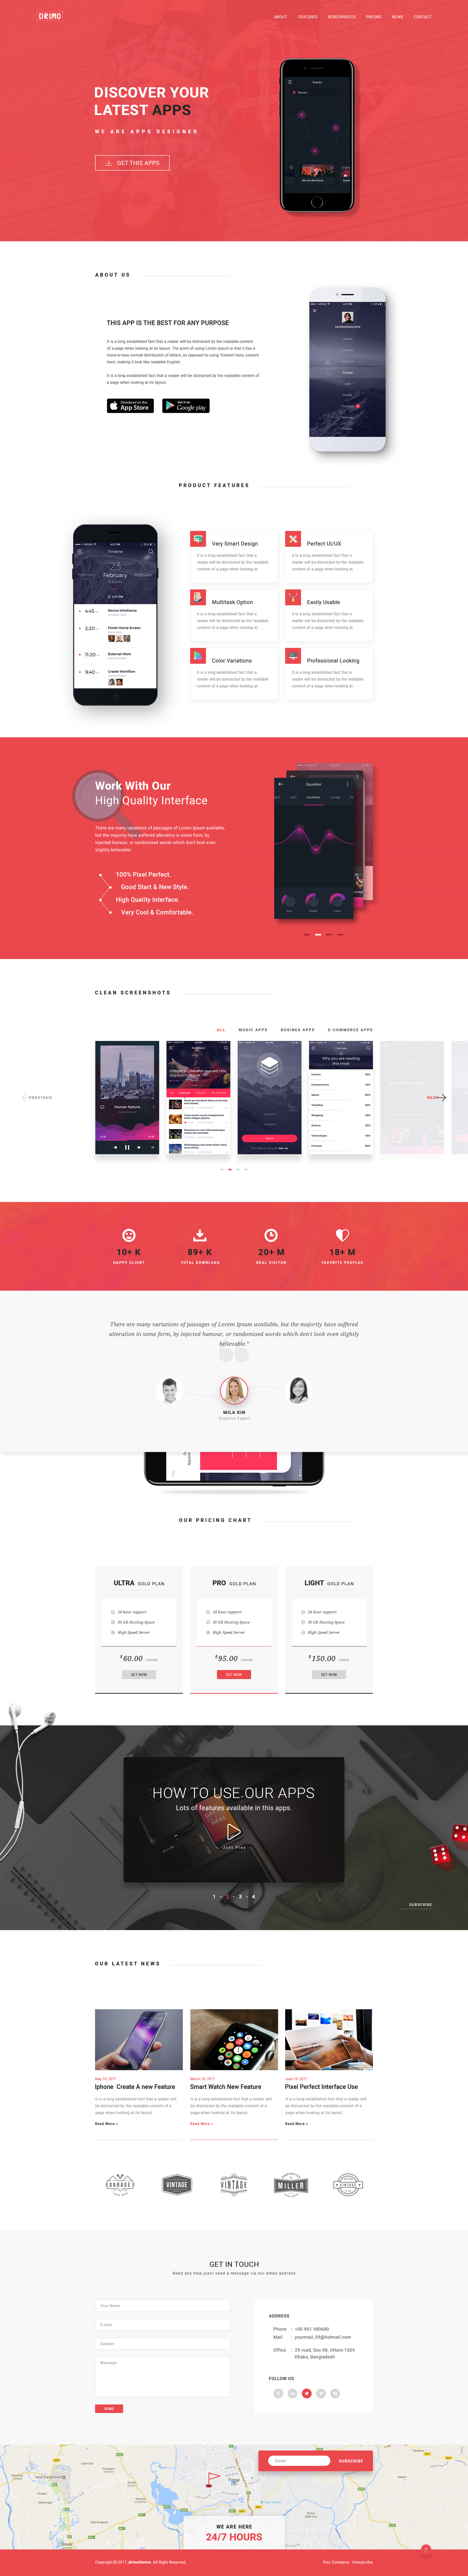 Home page 01 | web design | Pinterest | Ui inspiration, User ...